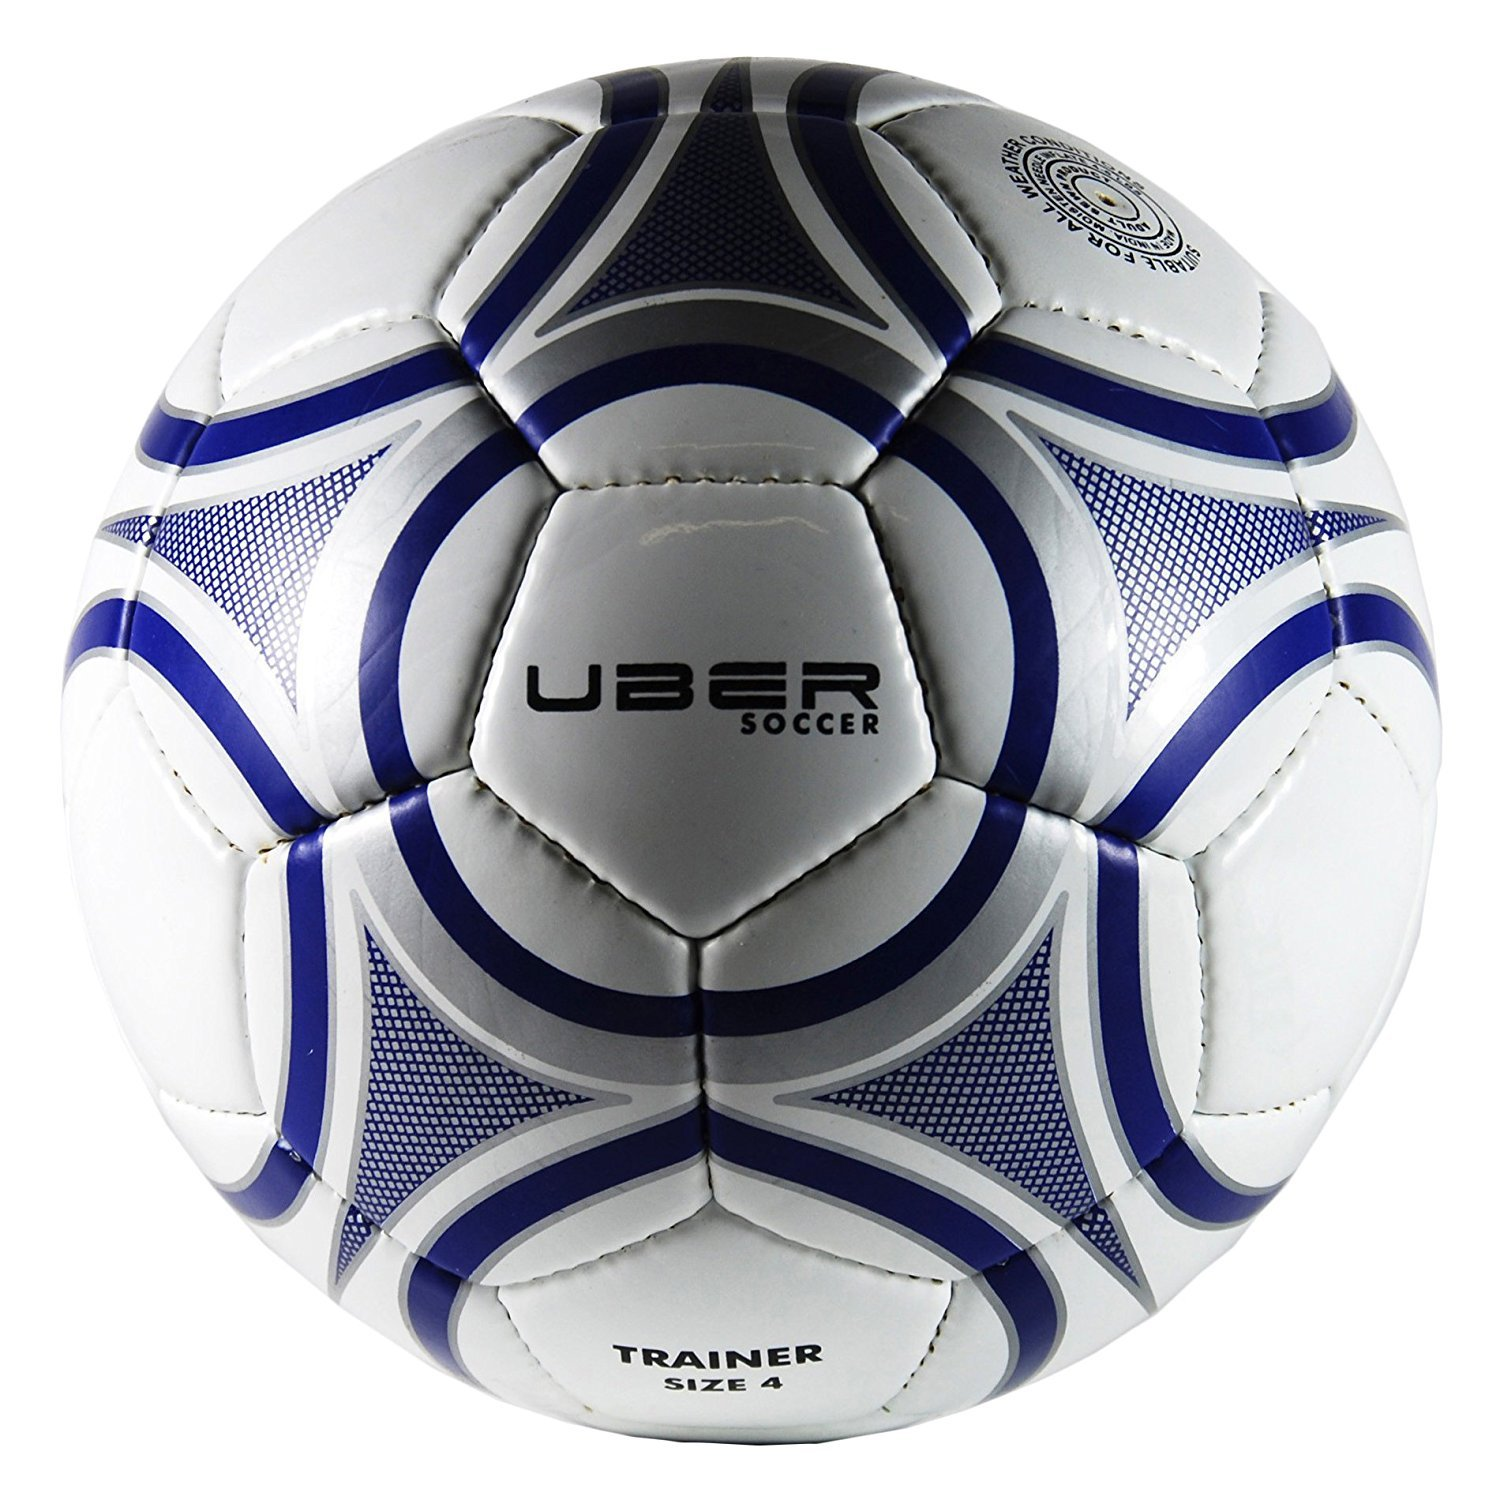 Uber Soccer Trainer Soccer Ball Bundle - Set of 12 - Size 5 by Uber Soccer (Image #1)